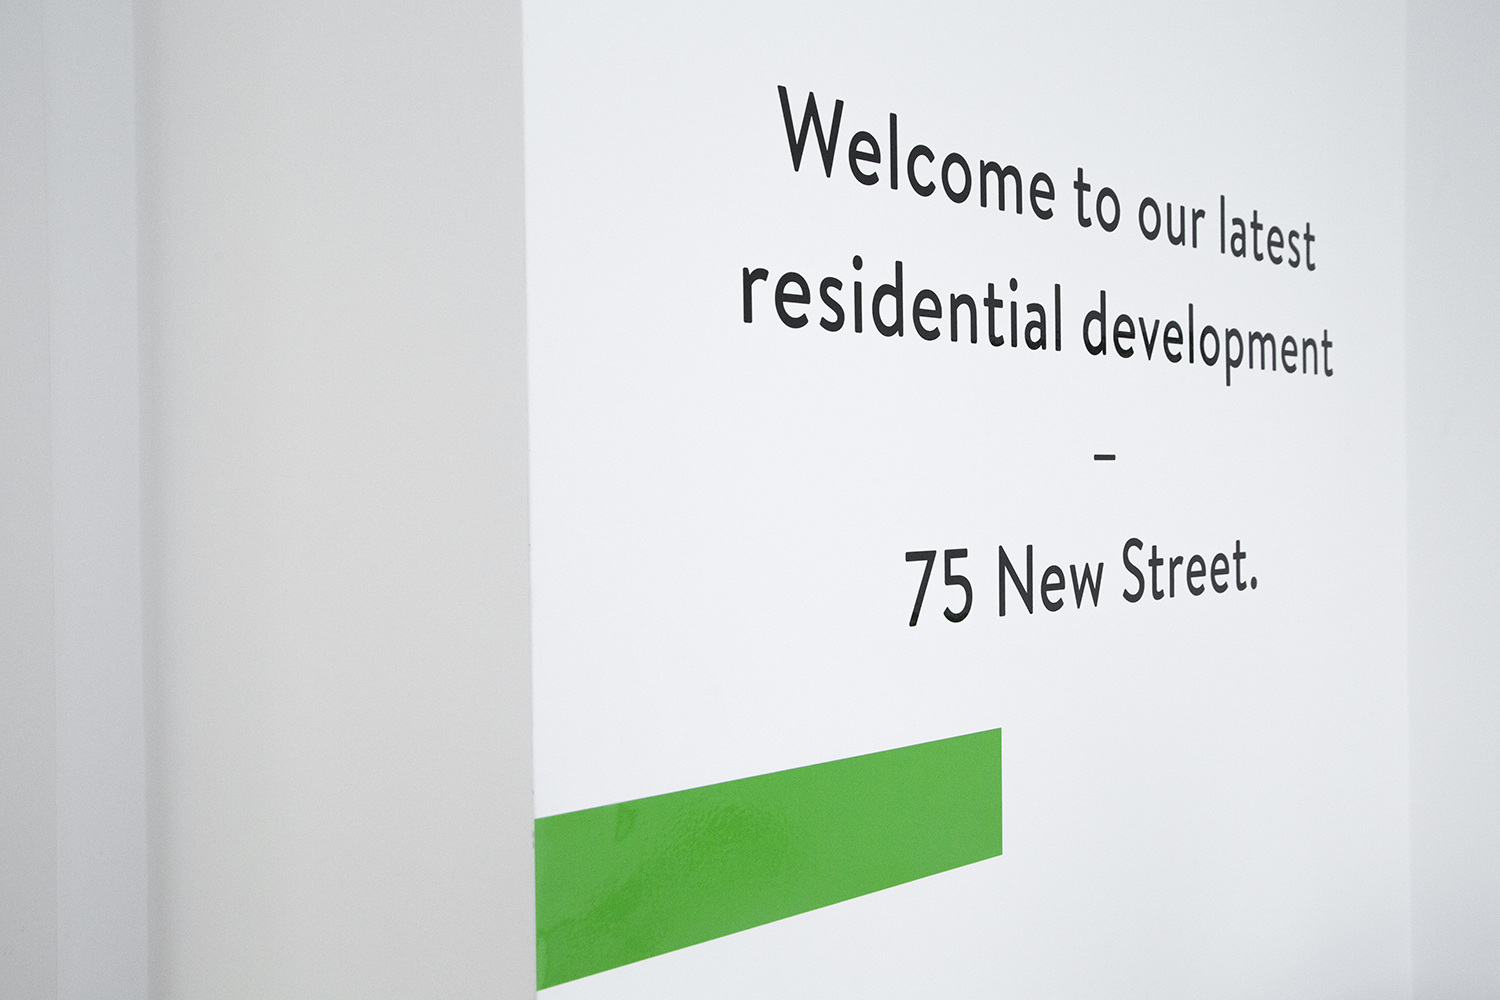 Branding and wayfinding for commercial and residential property developer Learig designed by The District, United Kingdom